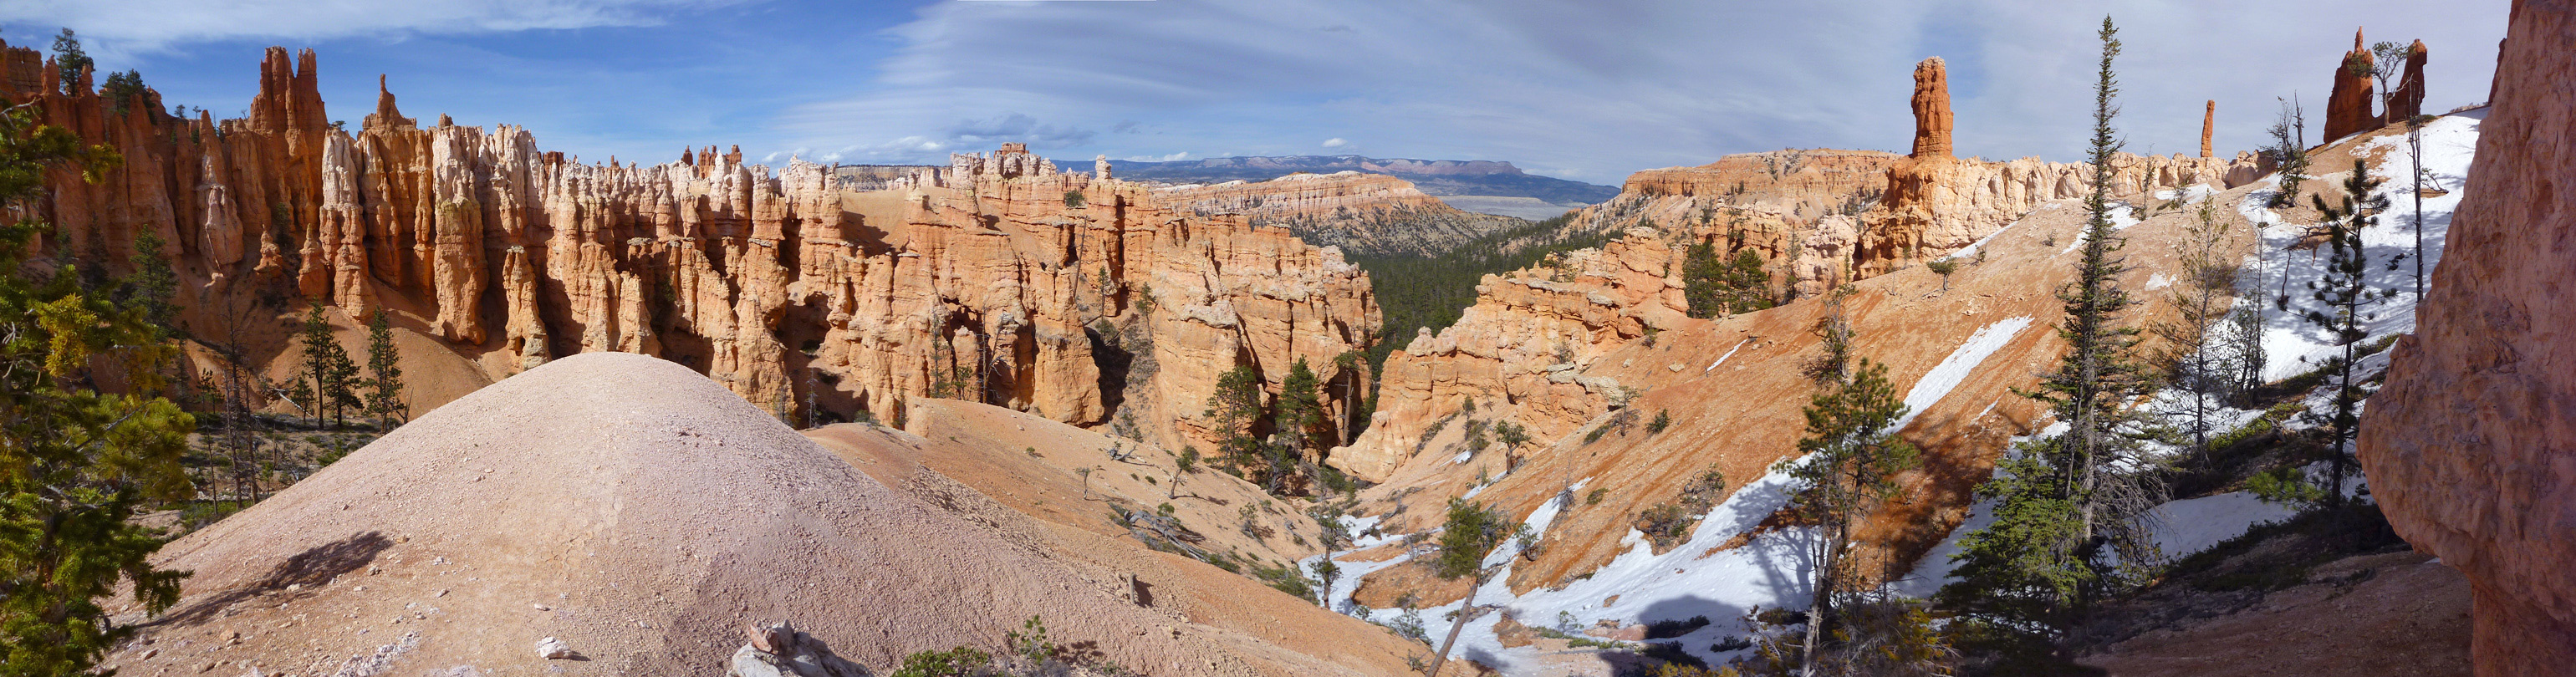 Patches of snow amongst the hoodoos